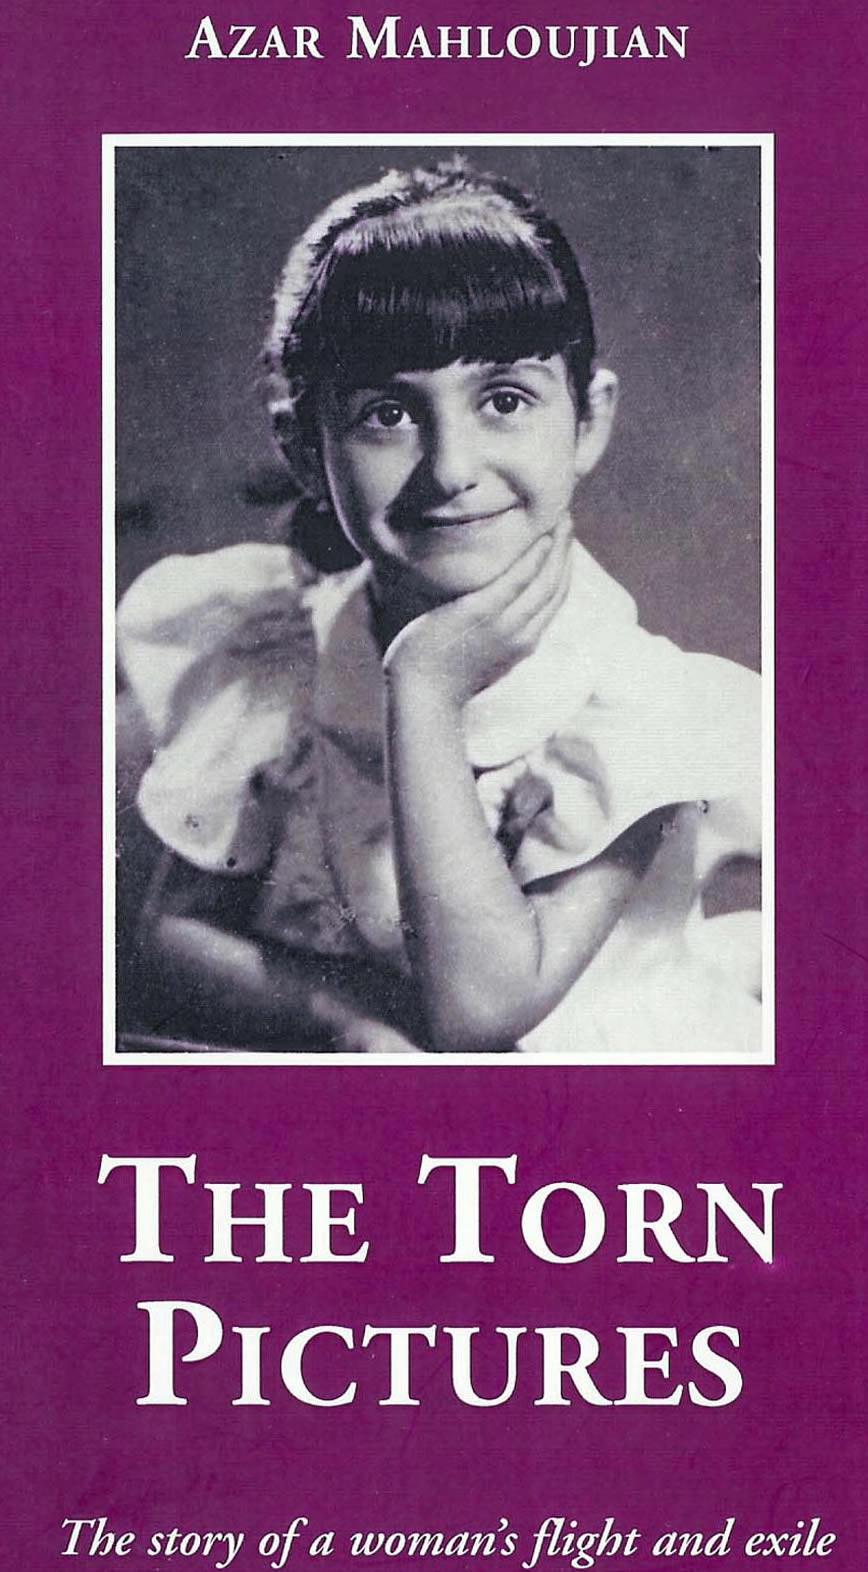 The Torn Pictures, Azar Mahlloujian, June, 2005, ISBN 91-7910-682-X,     Click here for the full size